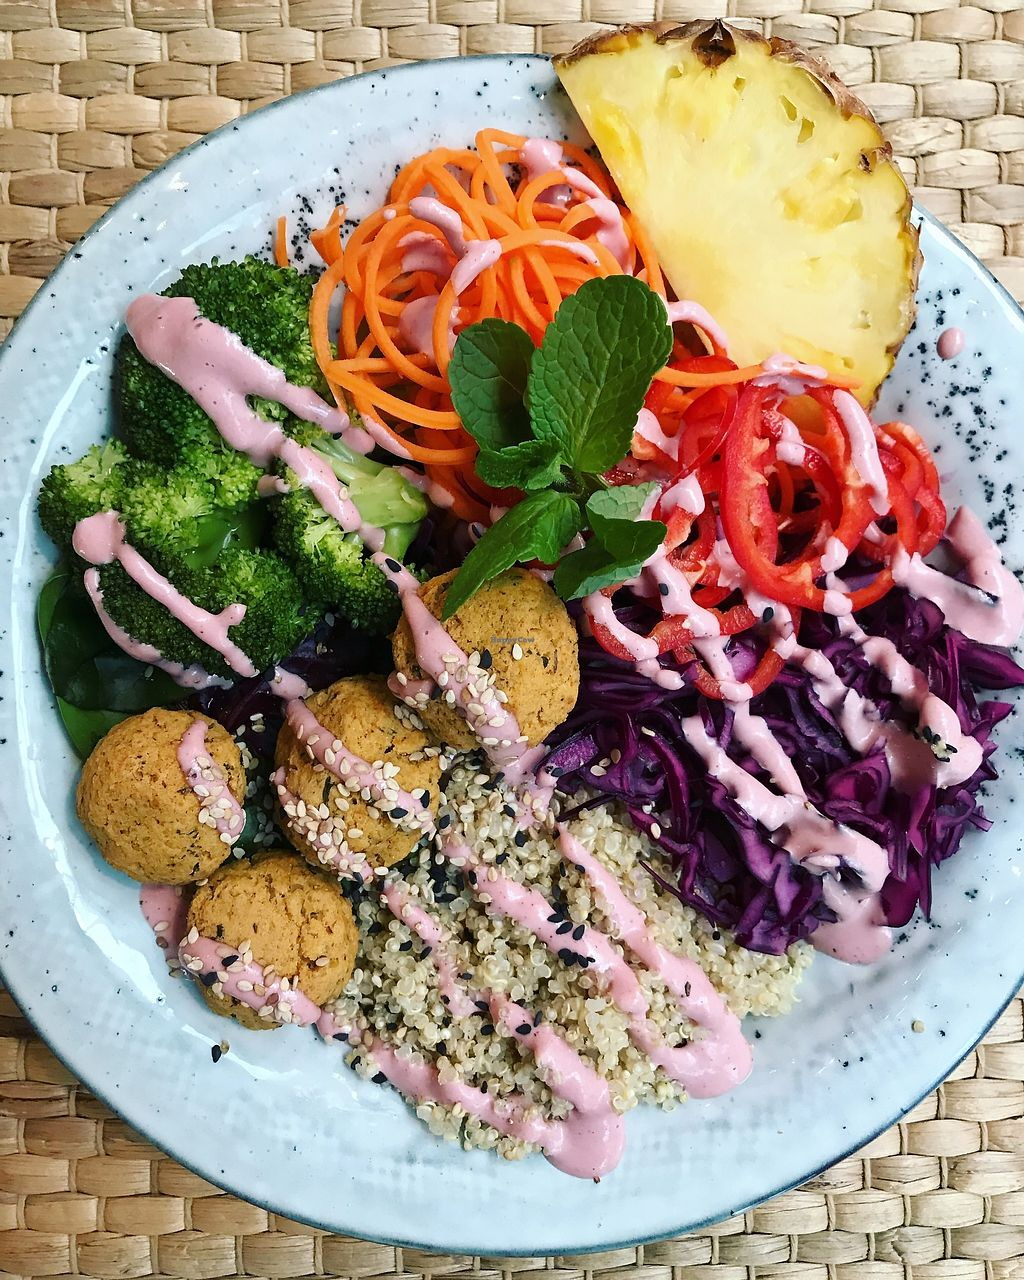 """Photo of Ra och sa  by <a href=""""/members/profile/raochsa"""">raochsa</a> <br/>FalafelBowl with pink tahinidressing and pickled red cabbage  <br/> January 31, 2018  - <a href='/contact/abuse/image/102750/353155'>Report</a>"""